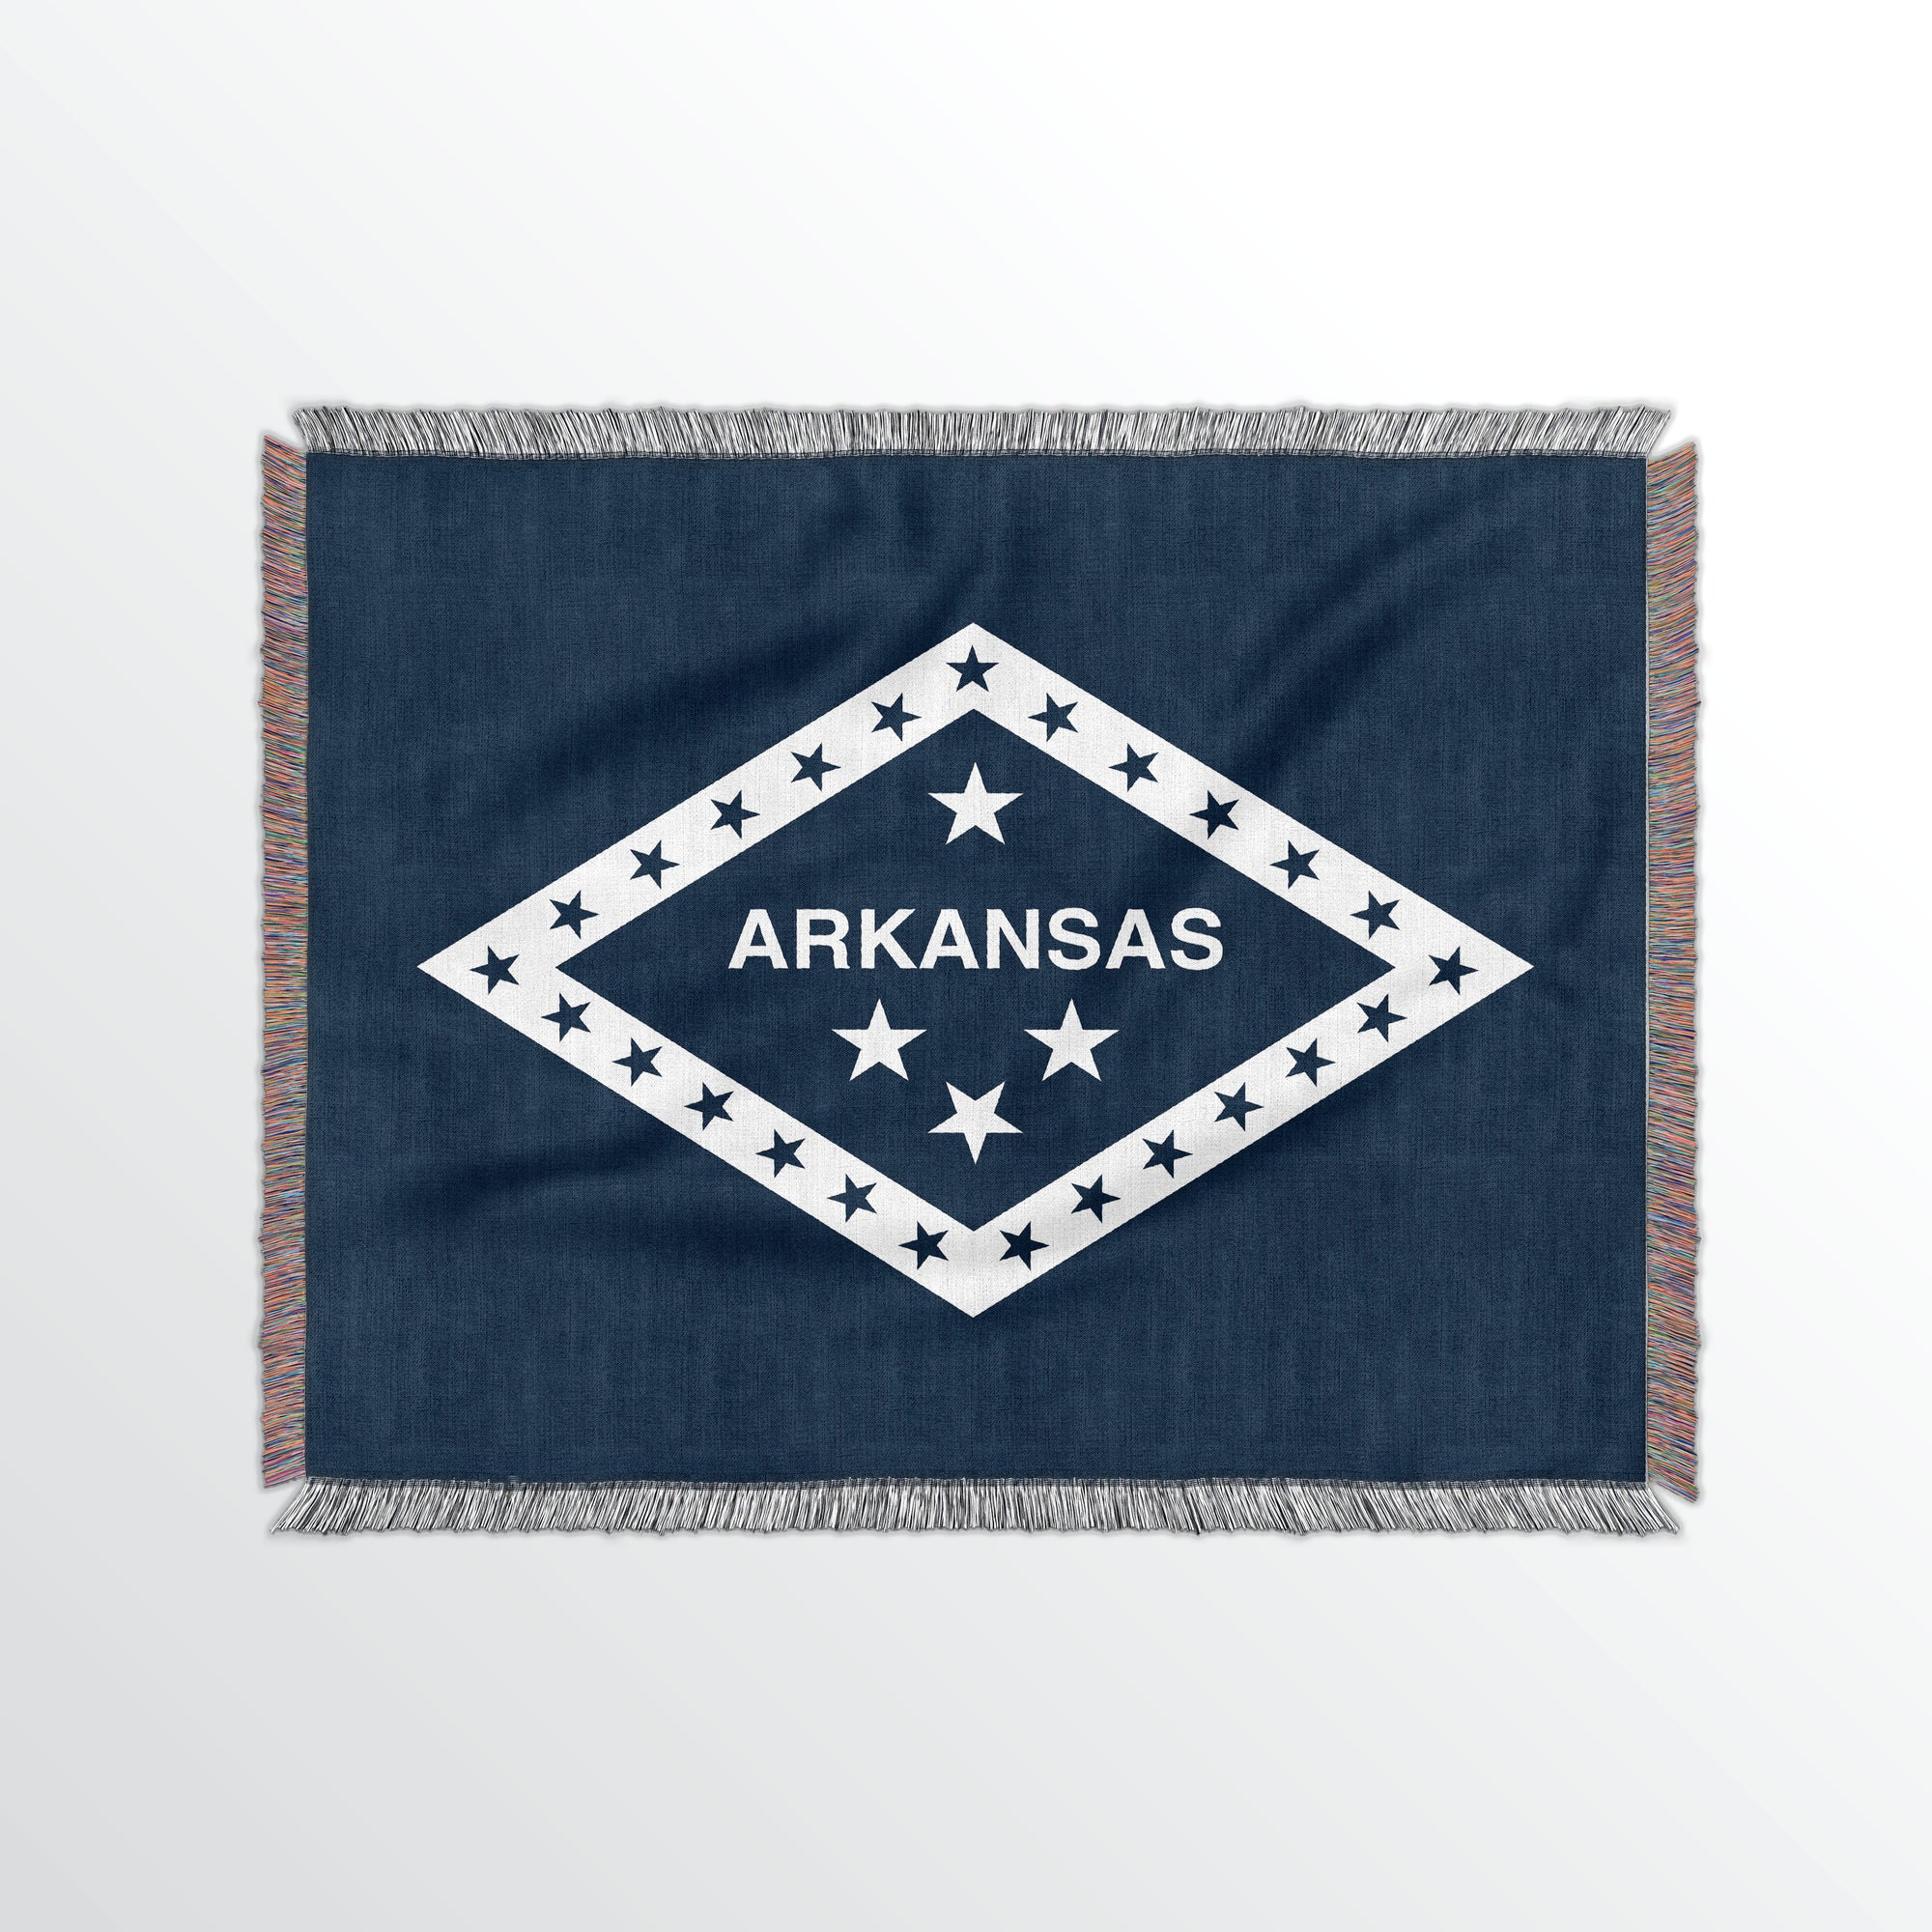 Arkansas State Woven Cotton Blanket - Point Two Design